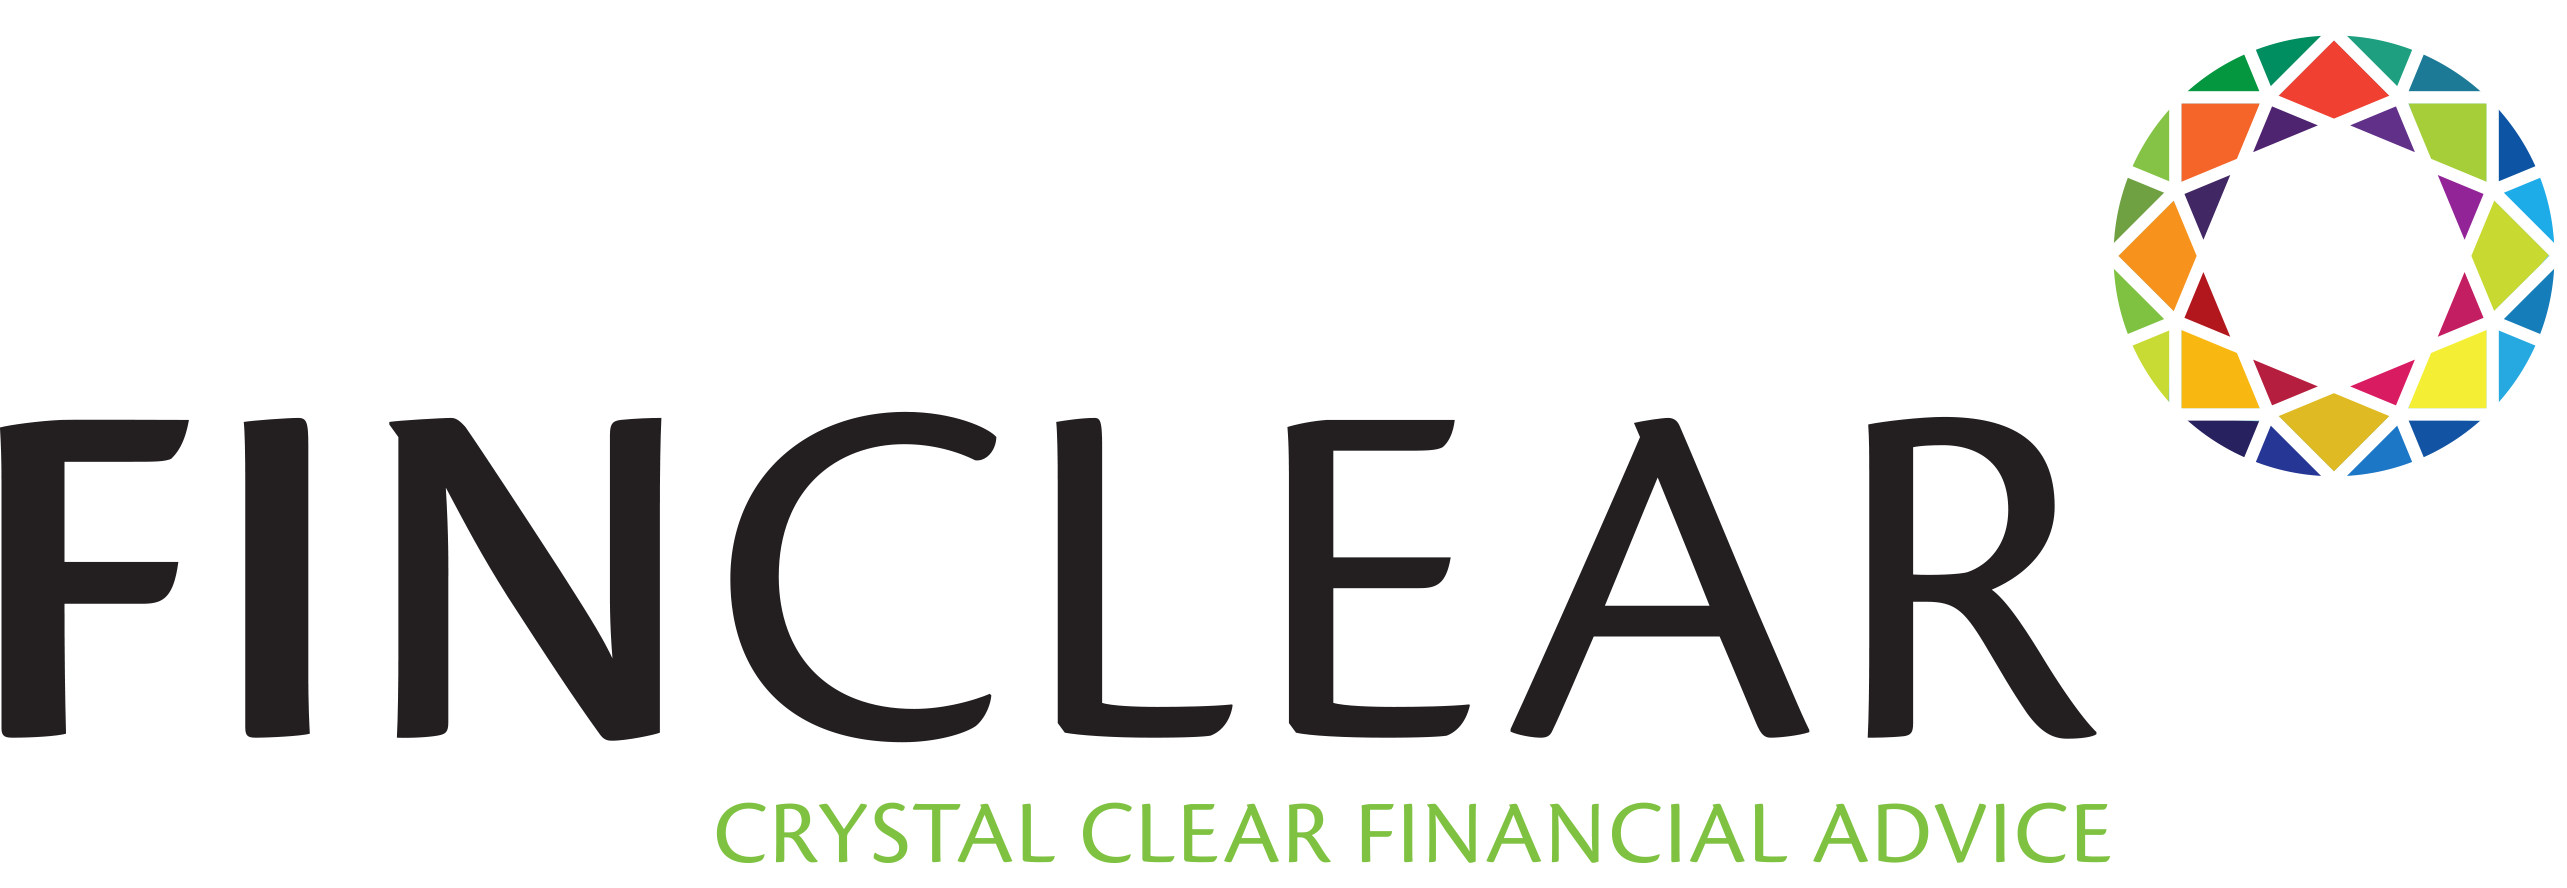 Finclear Financial Services